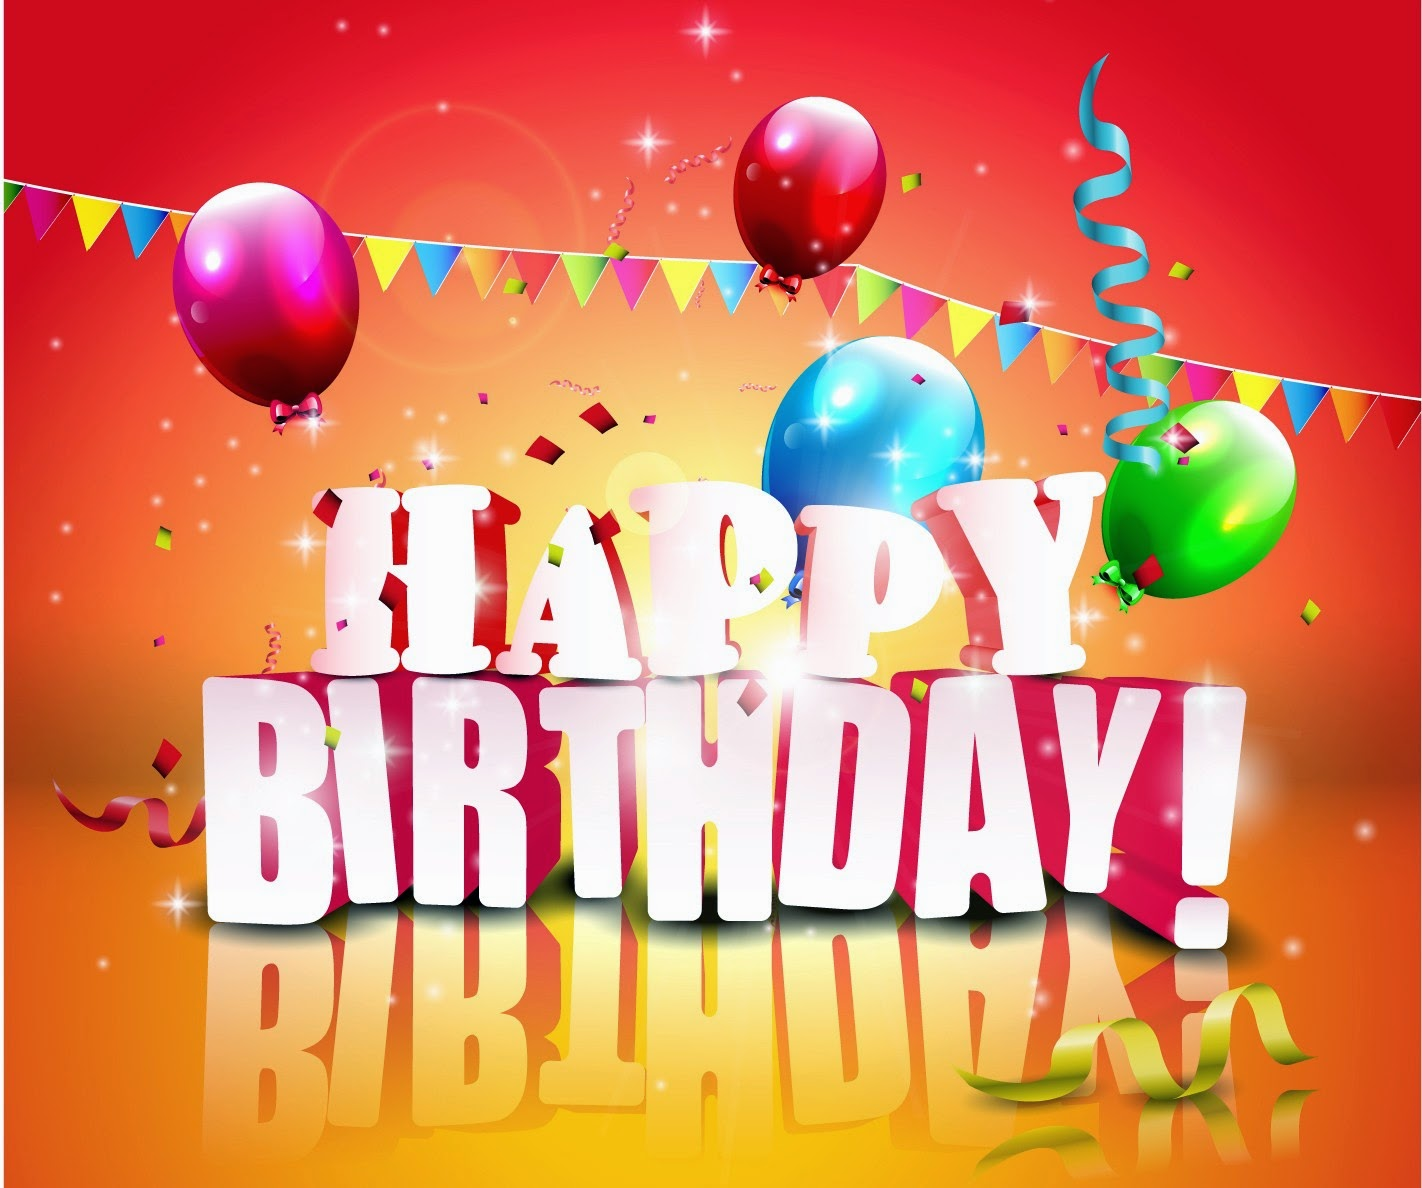 Free Birthday Cards For Facebook Friends gangcraftnet – Birthday Cards Online for Facebook